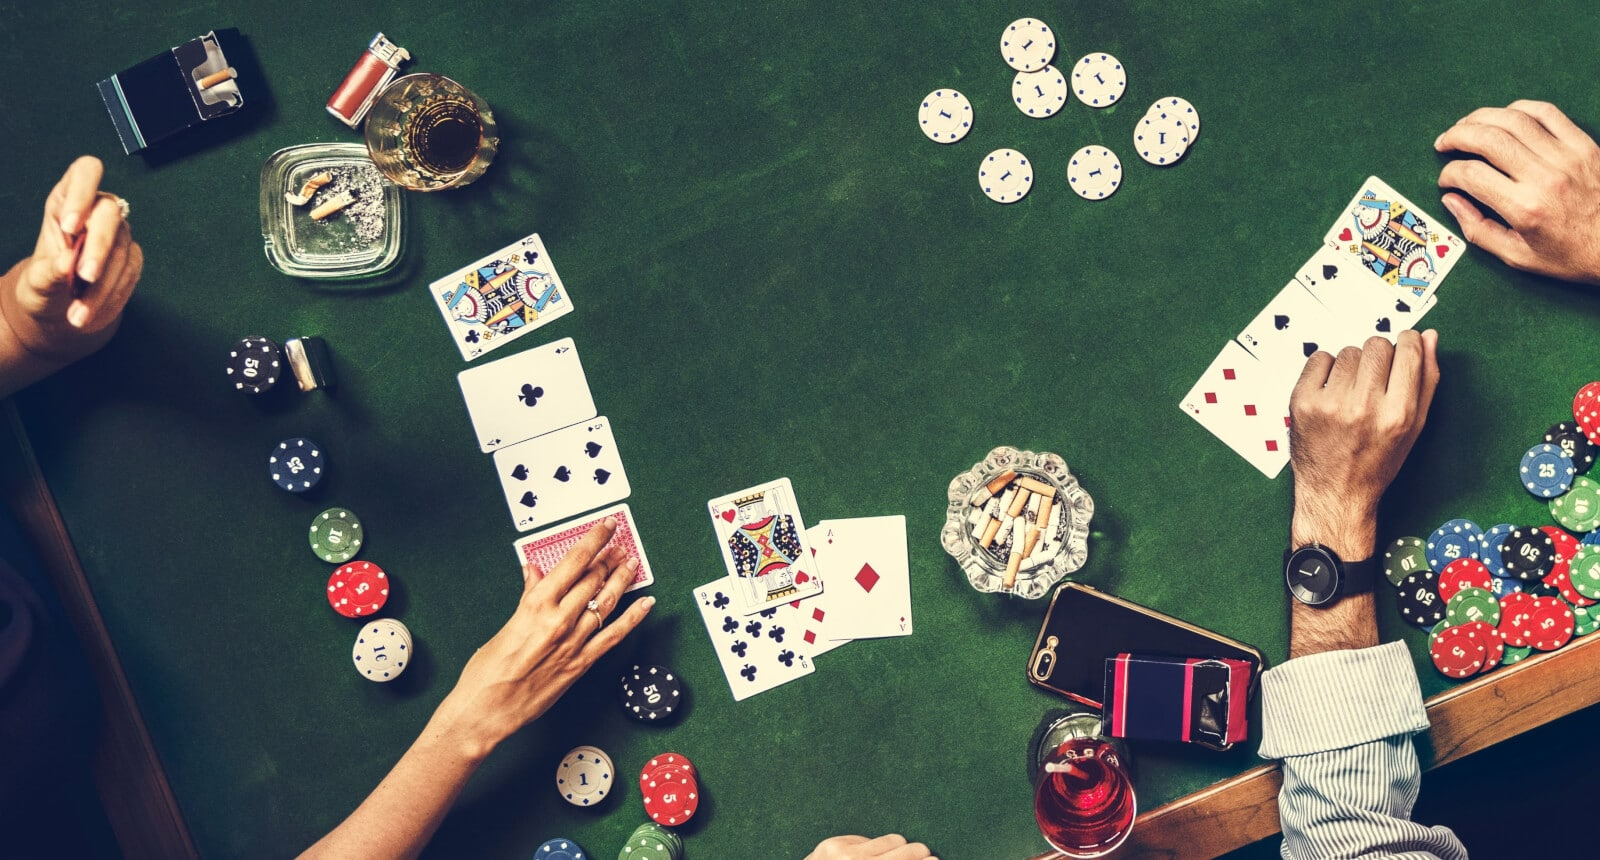 Some tips to choose the perfect online casino site